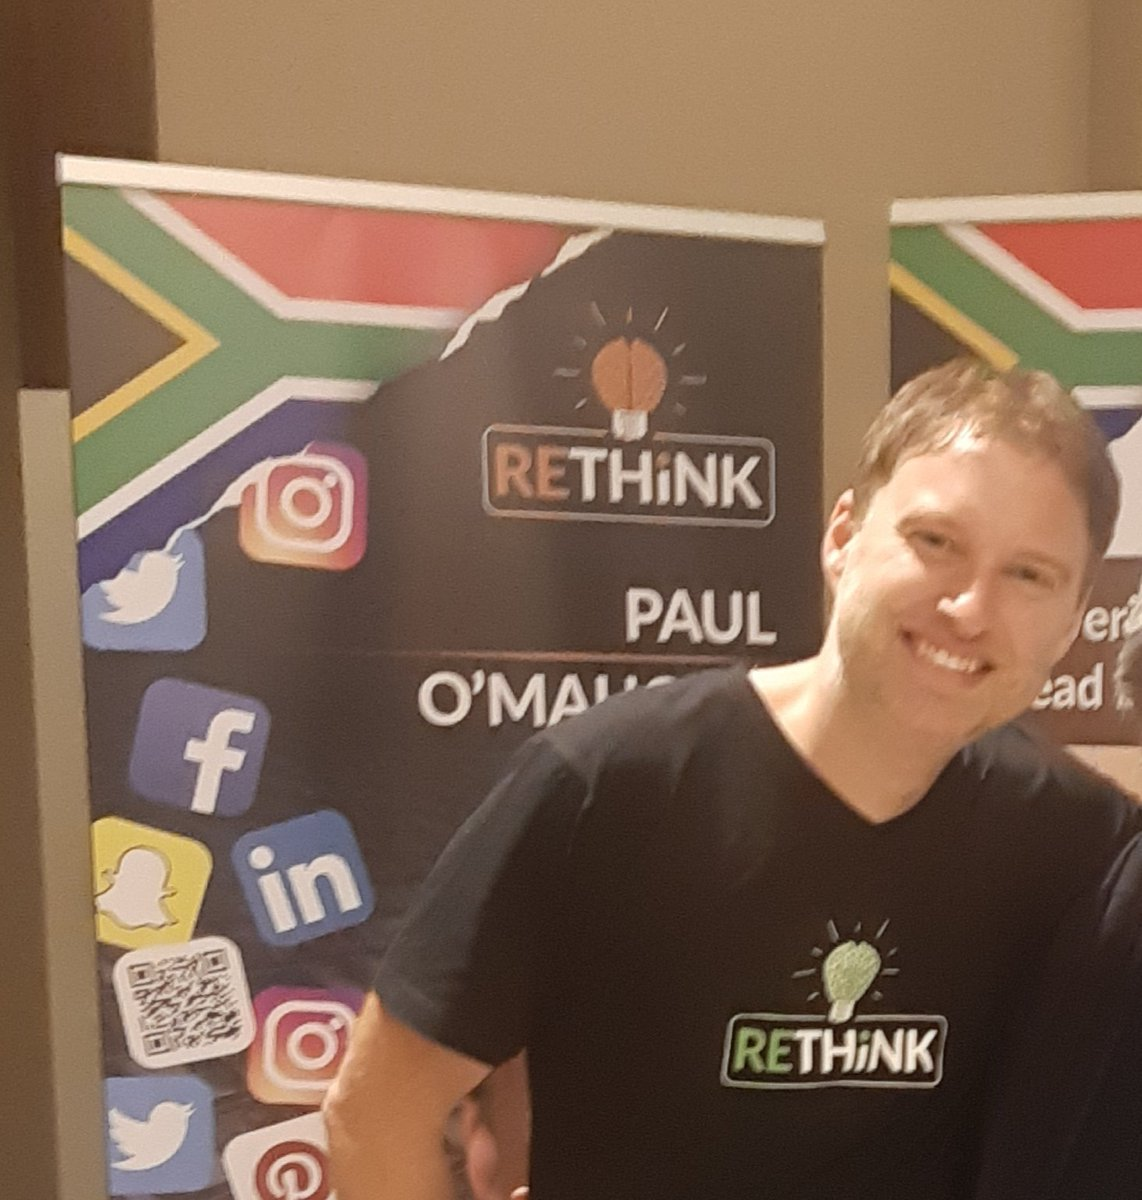 #fbkmillionaires  WOW what a full day...completed Day 1 of 3 days with Paul O'Mahony's Rethink workshop. @paulomahony I love his Irish wit...besides learning huge amounts today, he had us laughing alot. What an Awesome day.  #rethinkandgrowrich <br>http://pic.twitter.com/LTVFD5ftpH